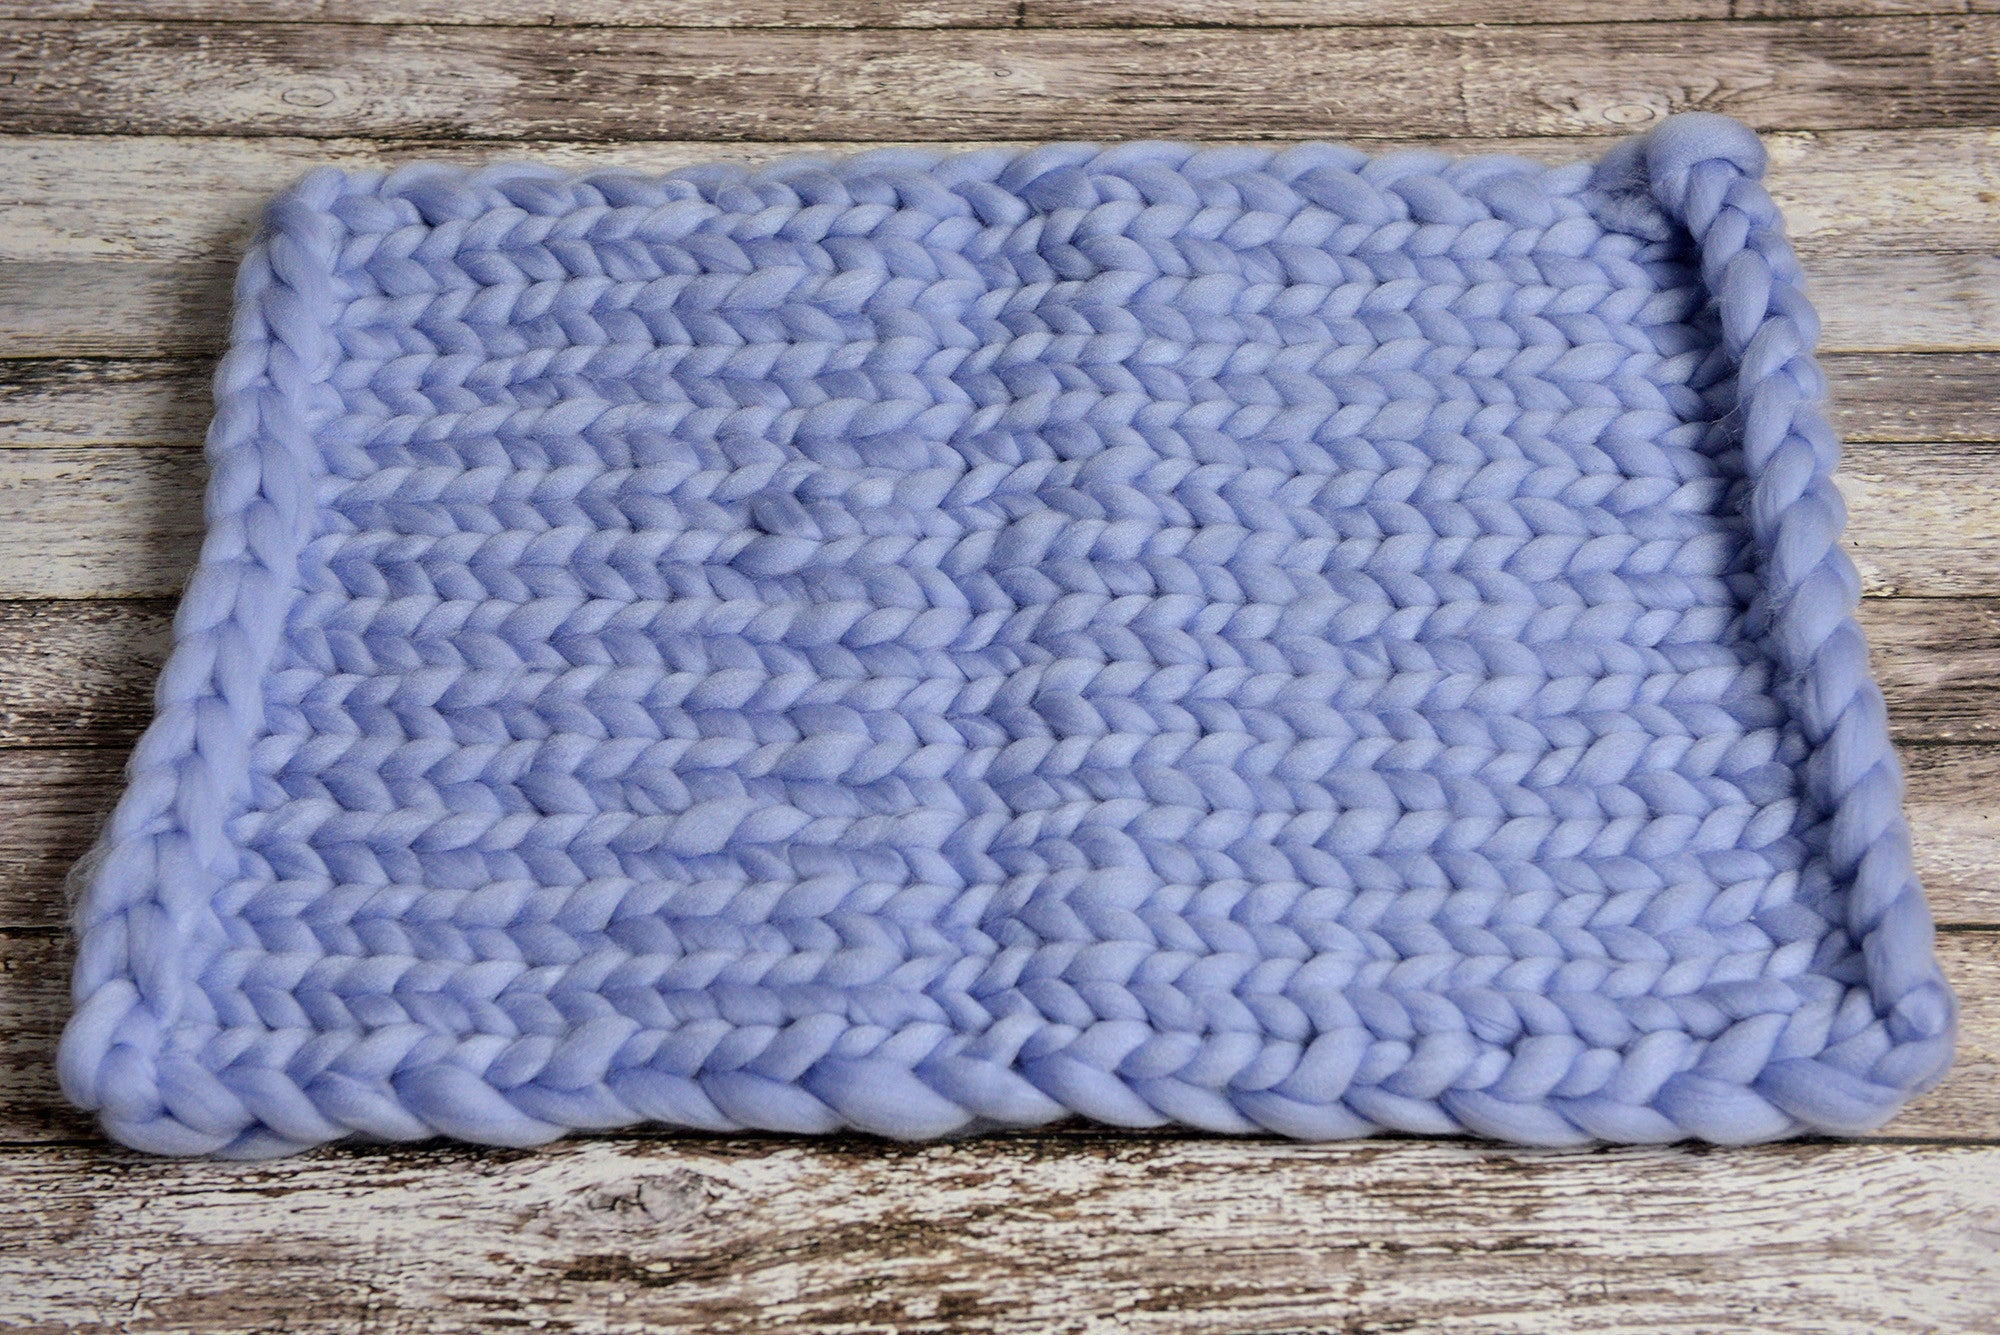 Knitted Thick Yarn Blanket - Light Blue-Newborn Photography Props